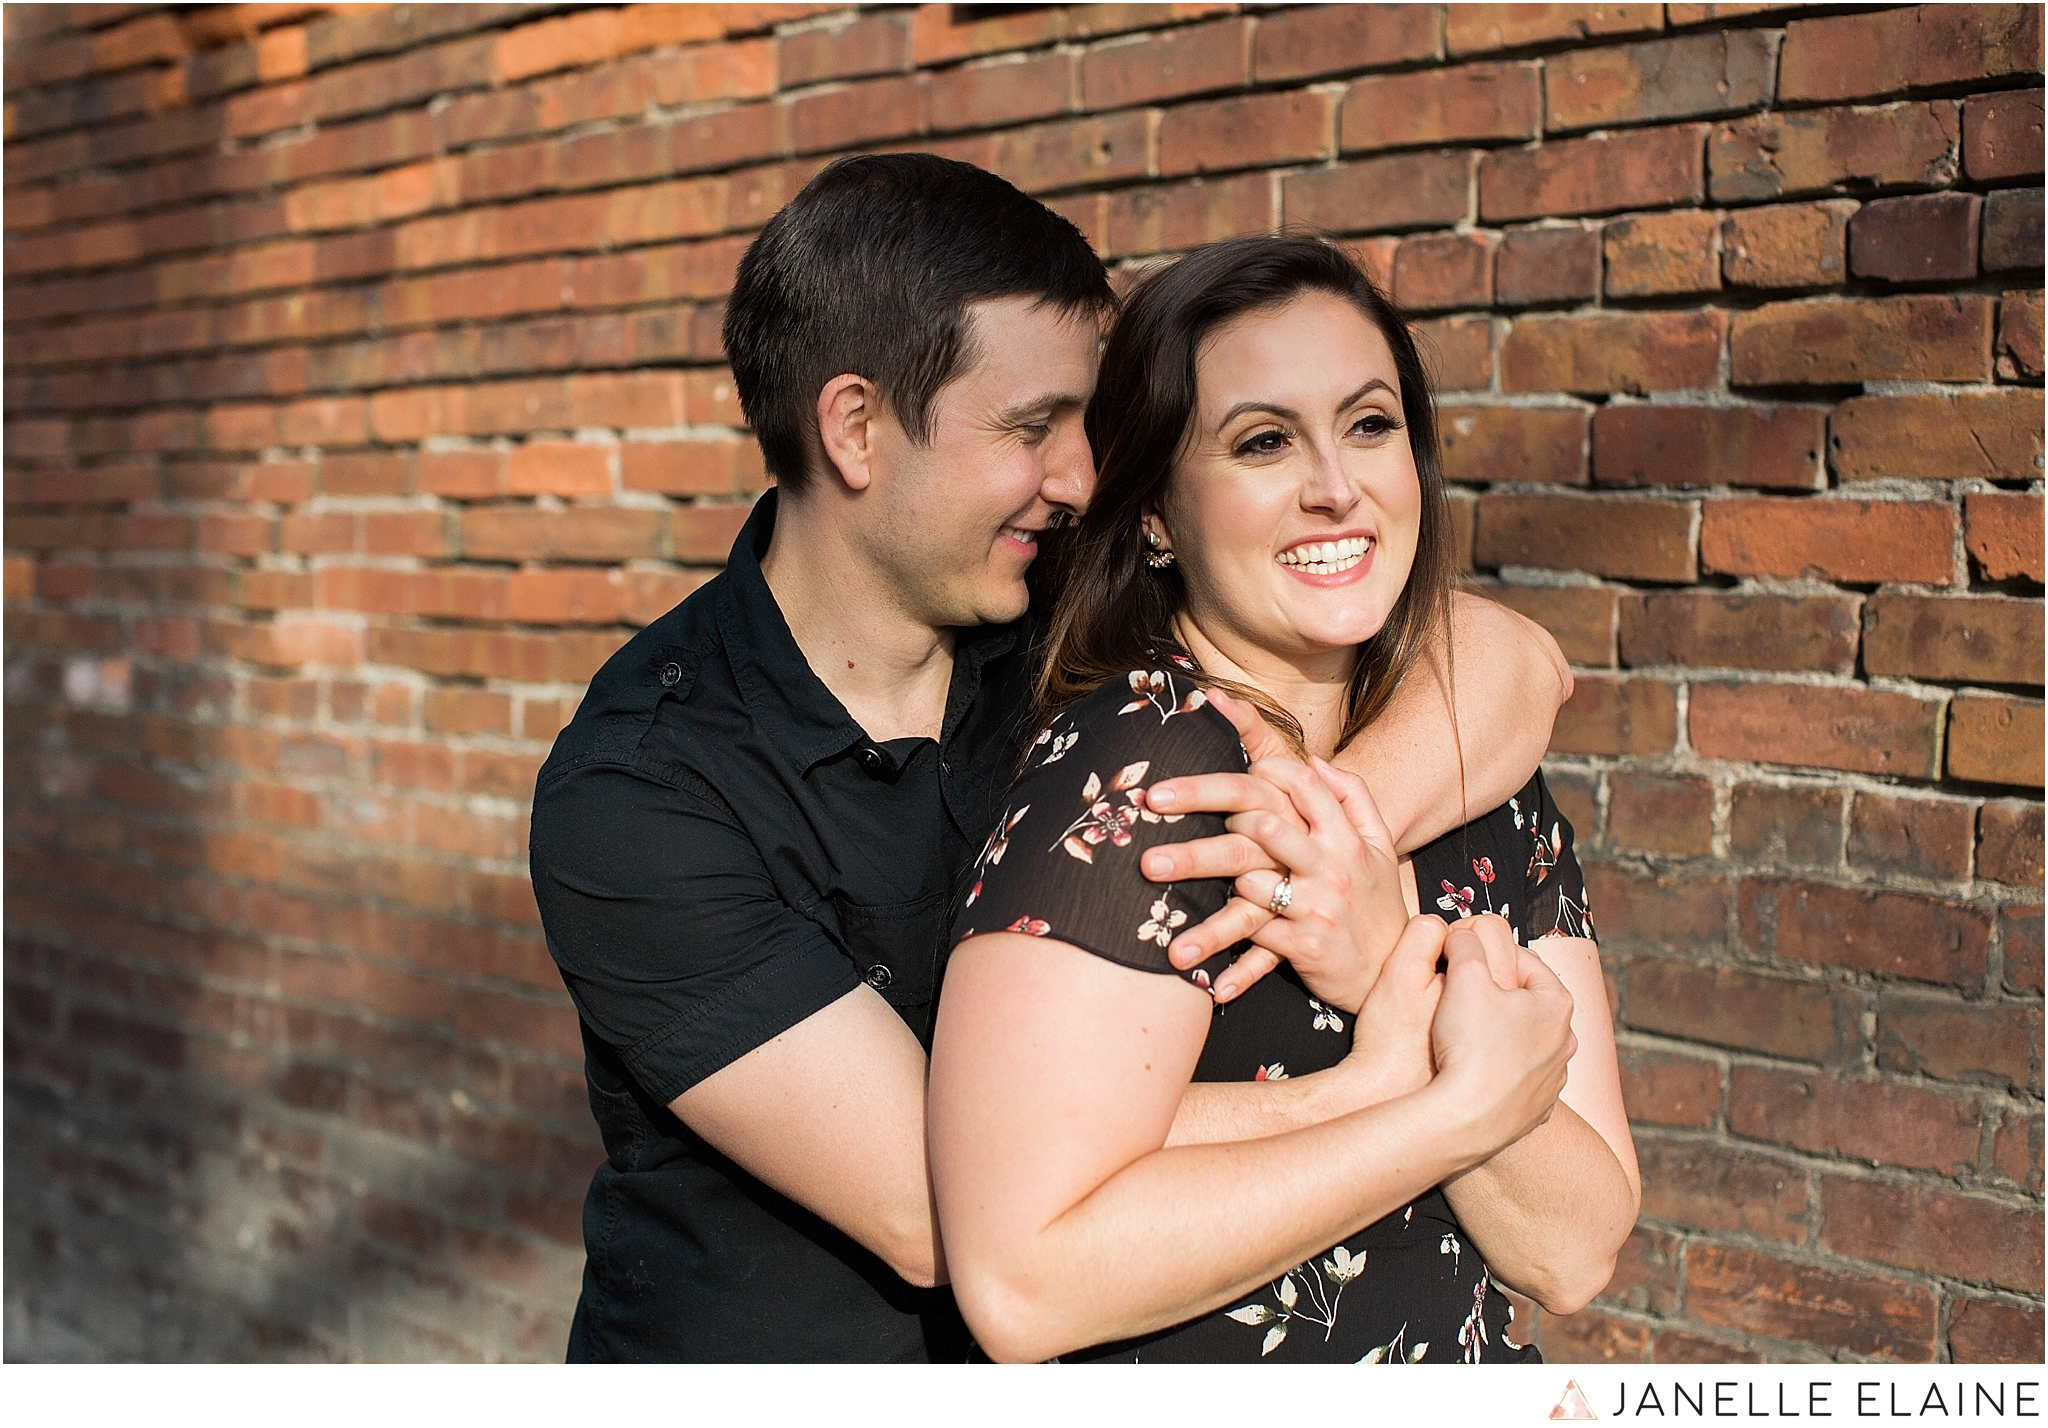 karen ethan-georgetown engagement photos-seattle-janelle elaine photography-129.jpg